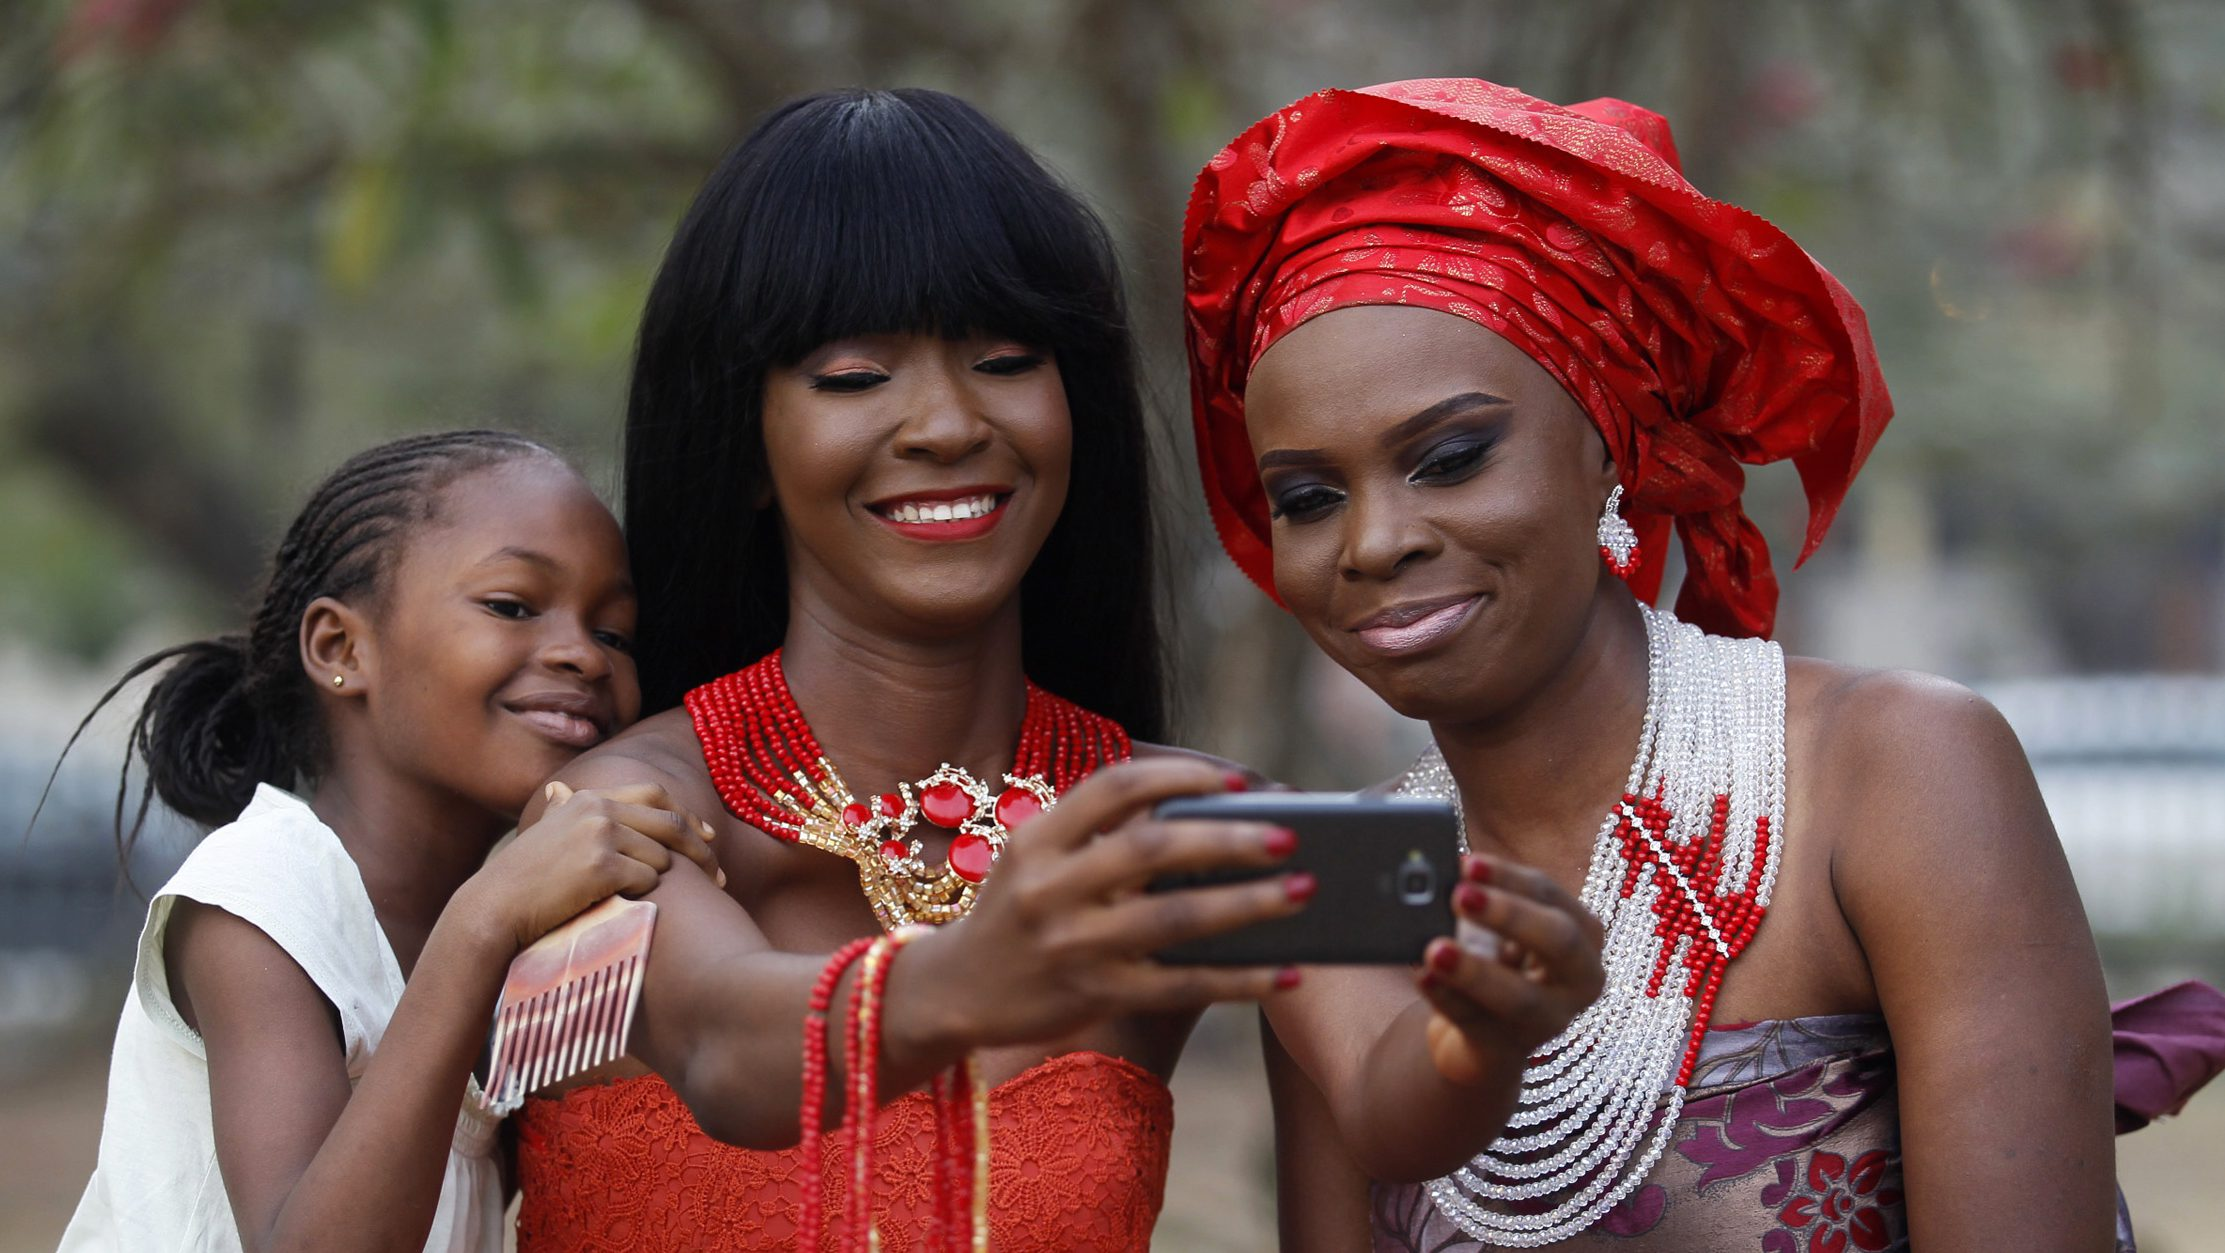 Models take selfies as they display neck beads, popularly used in social ceremonies, at a park in Ikeja duistrict in Lagos January 11, 2015.